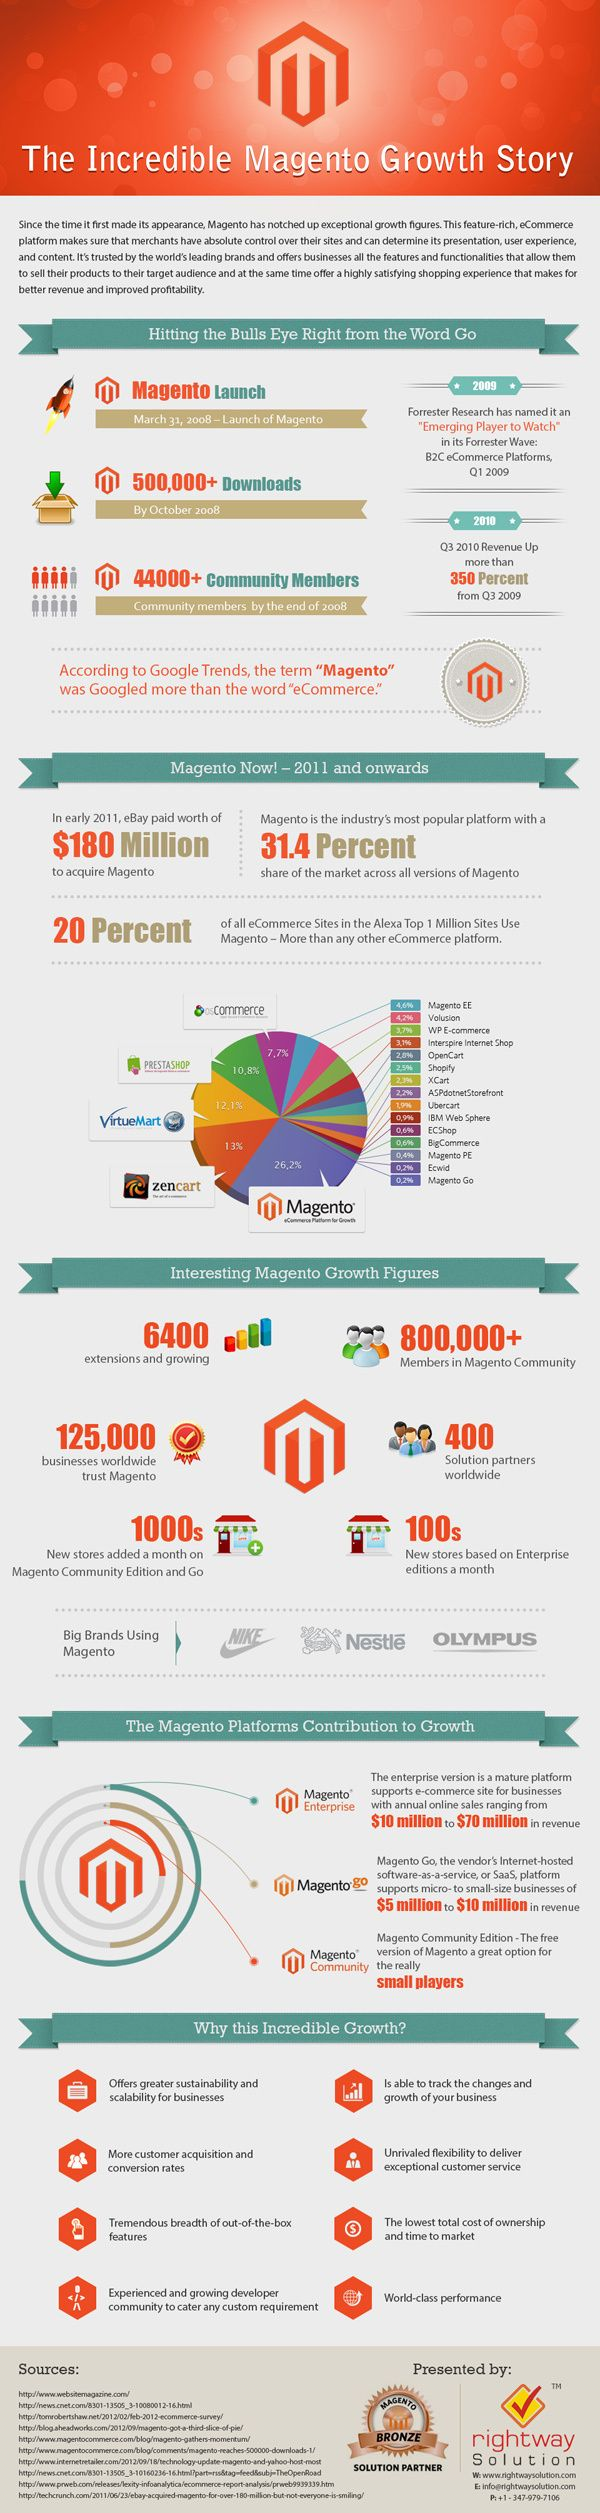 The Growth Story of Magento Ecommerce CMS